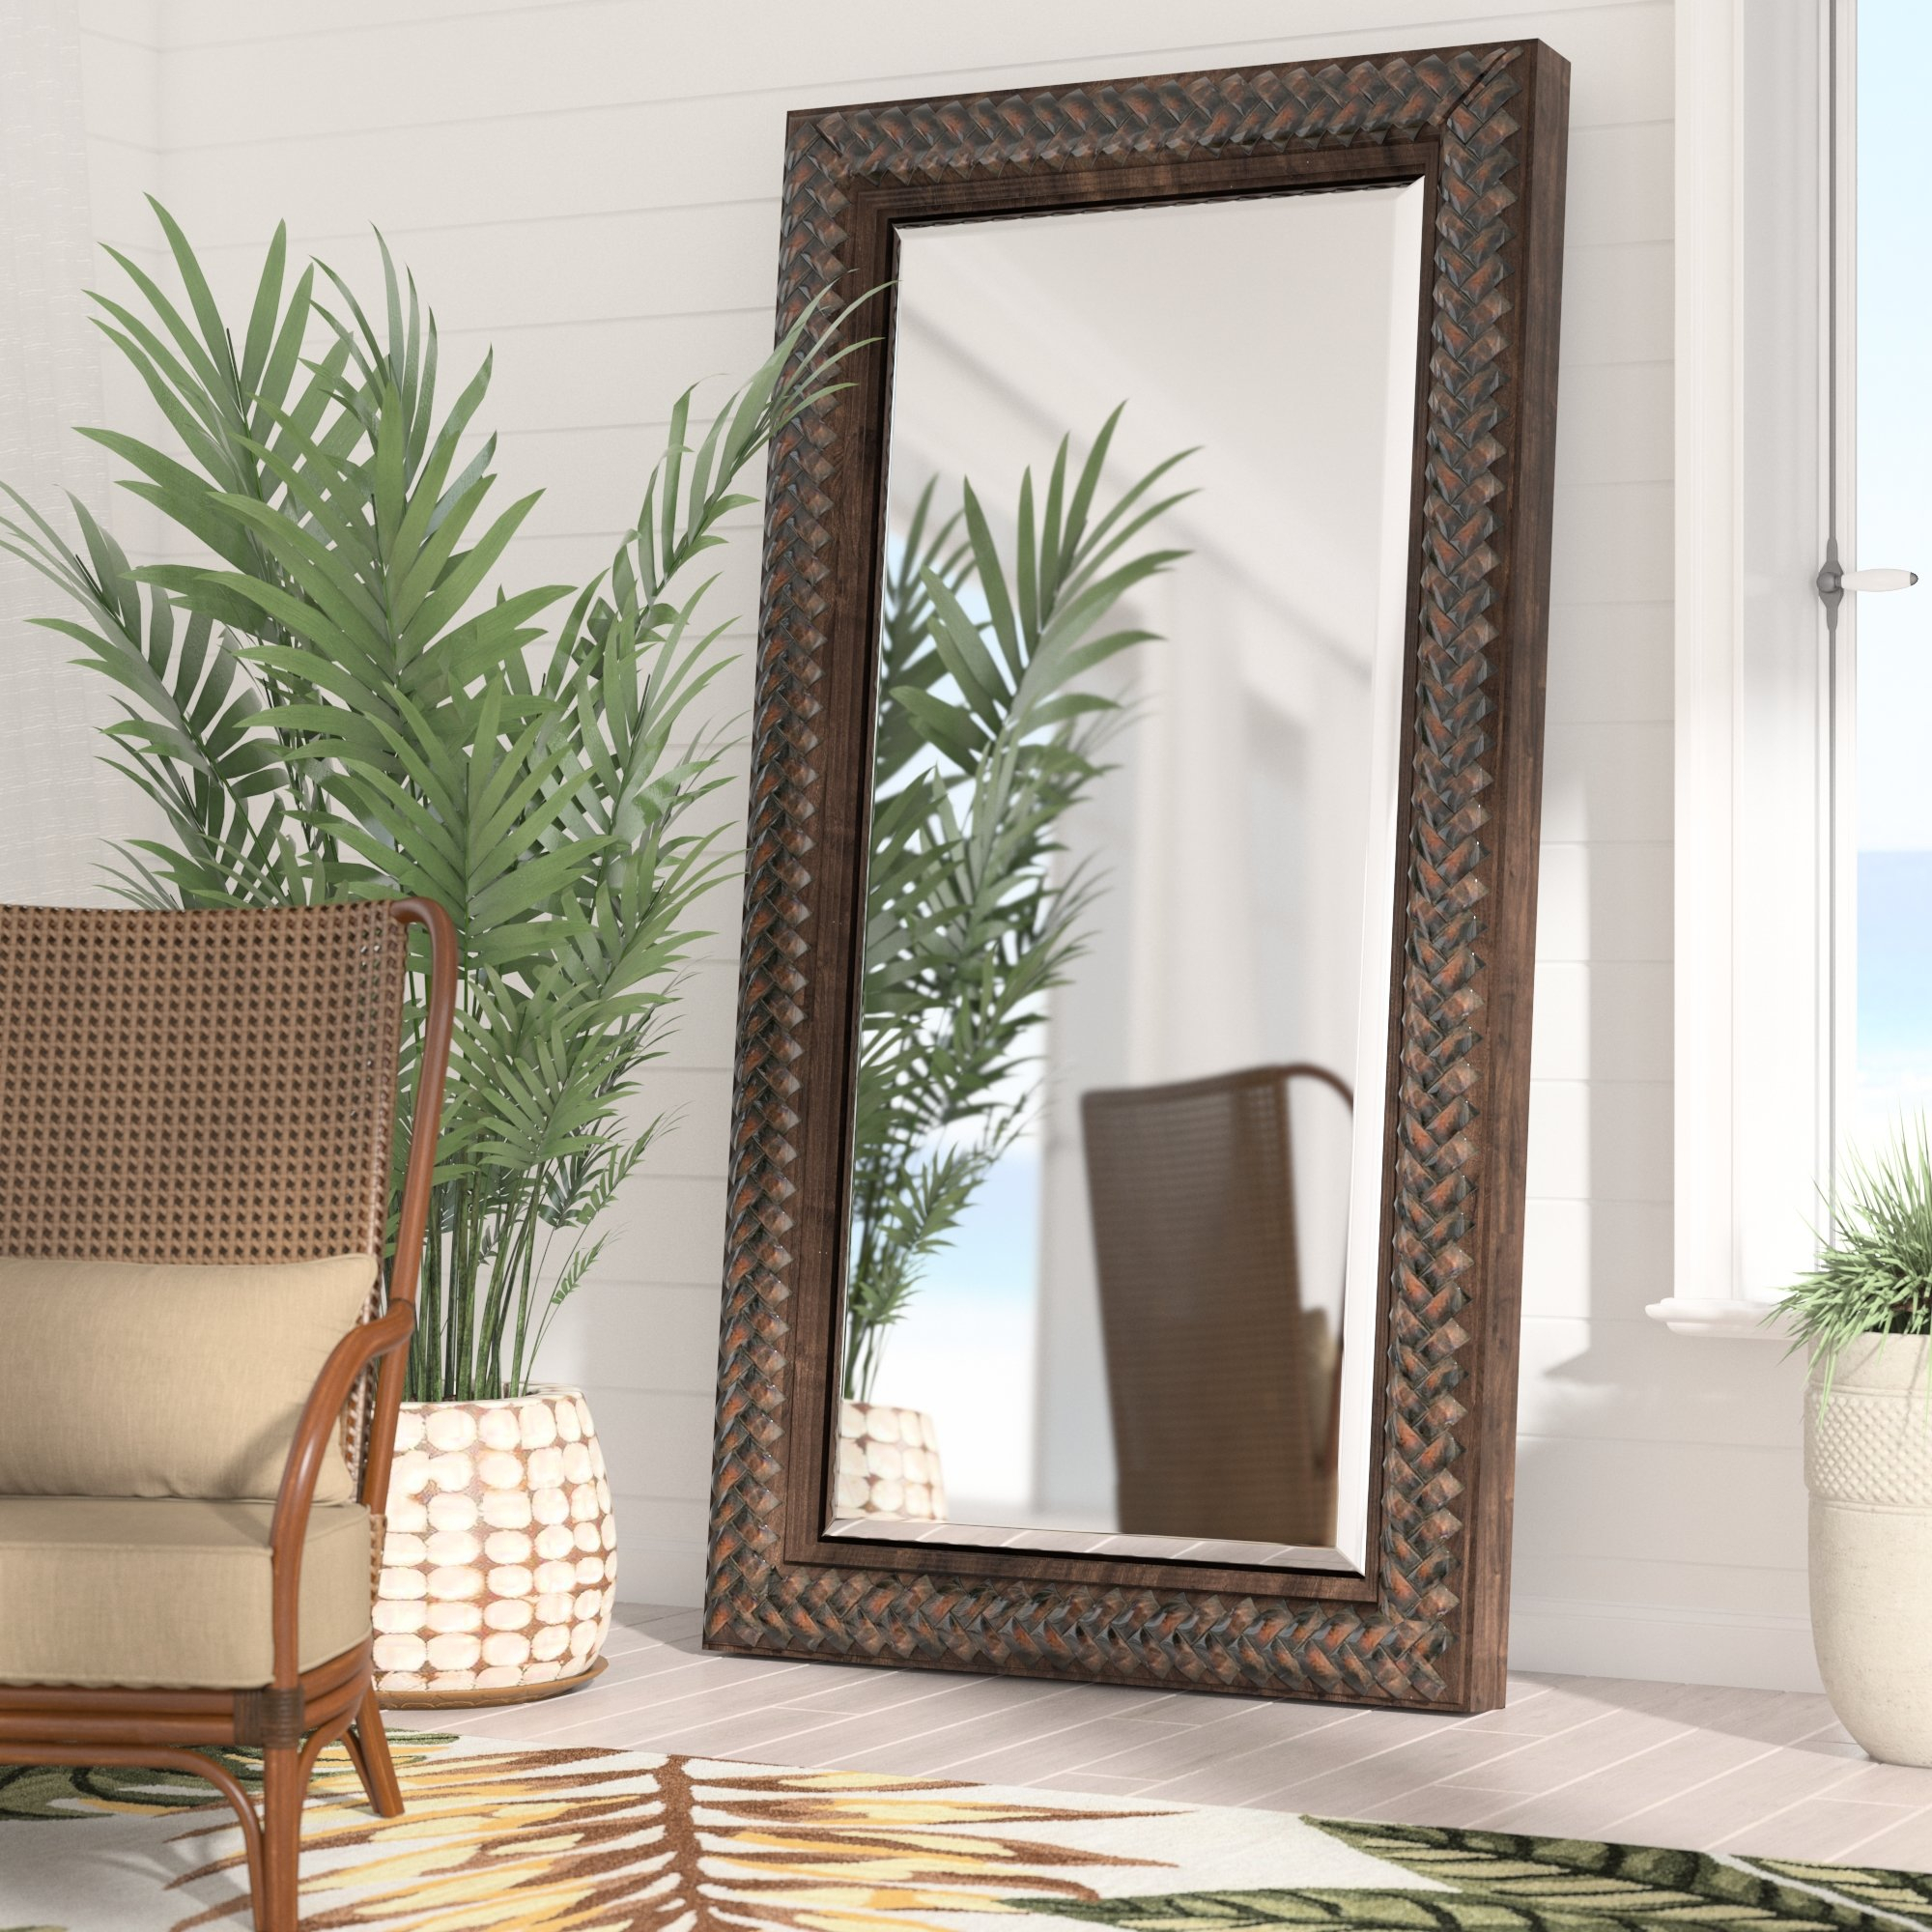 Farmhouse & Rustic Floor Mirrors | Birch Lane Pertaining To Handcrafted Farmhouse Full Length Mirrors (View 11 of 30)